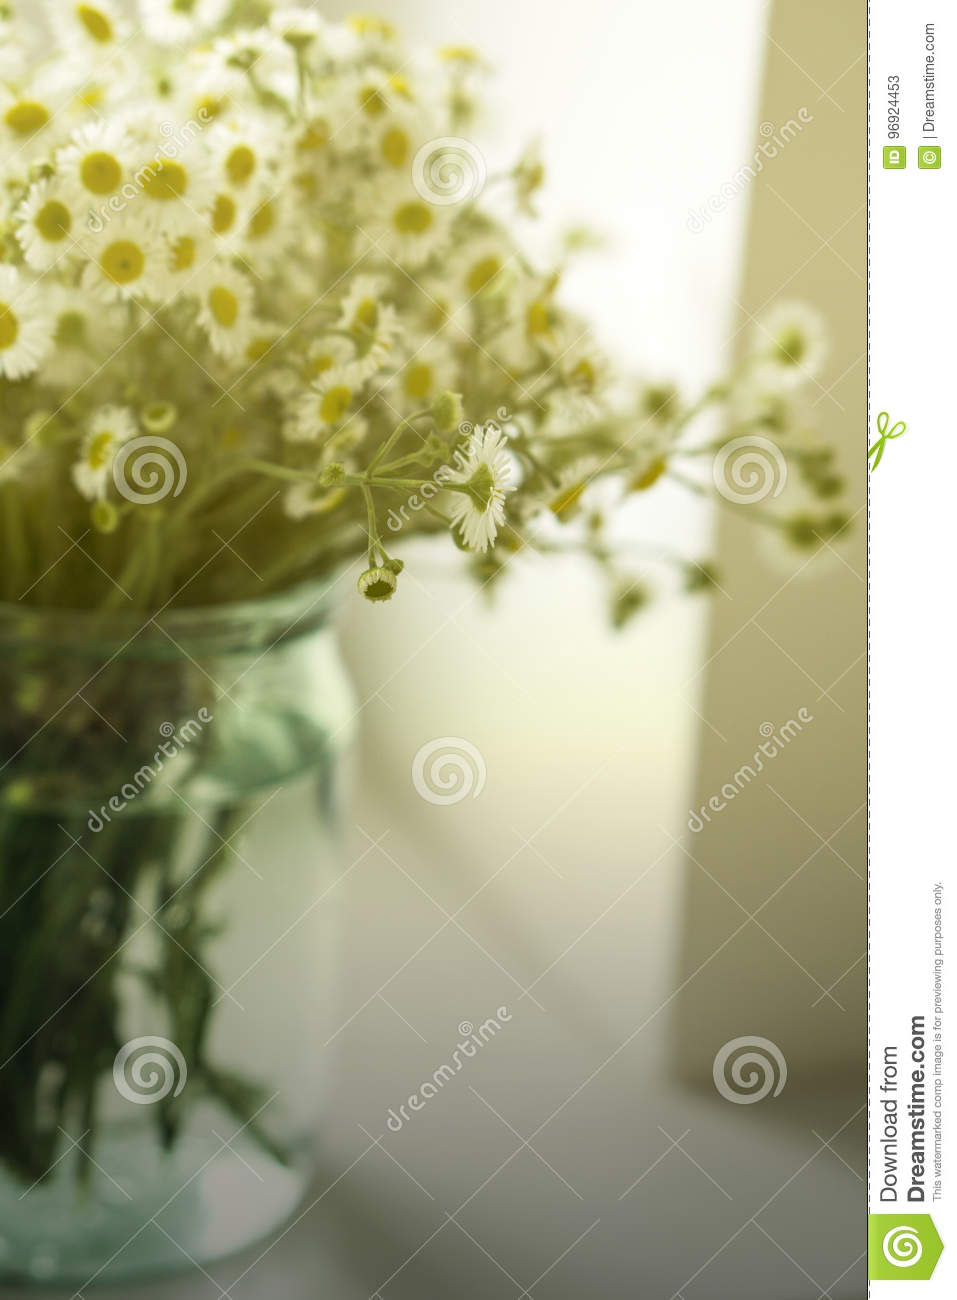 A bouquet of wildflowers camomiles in a glass jar on a table by the window. Vintage tone